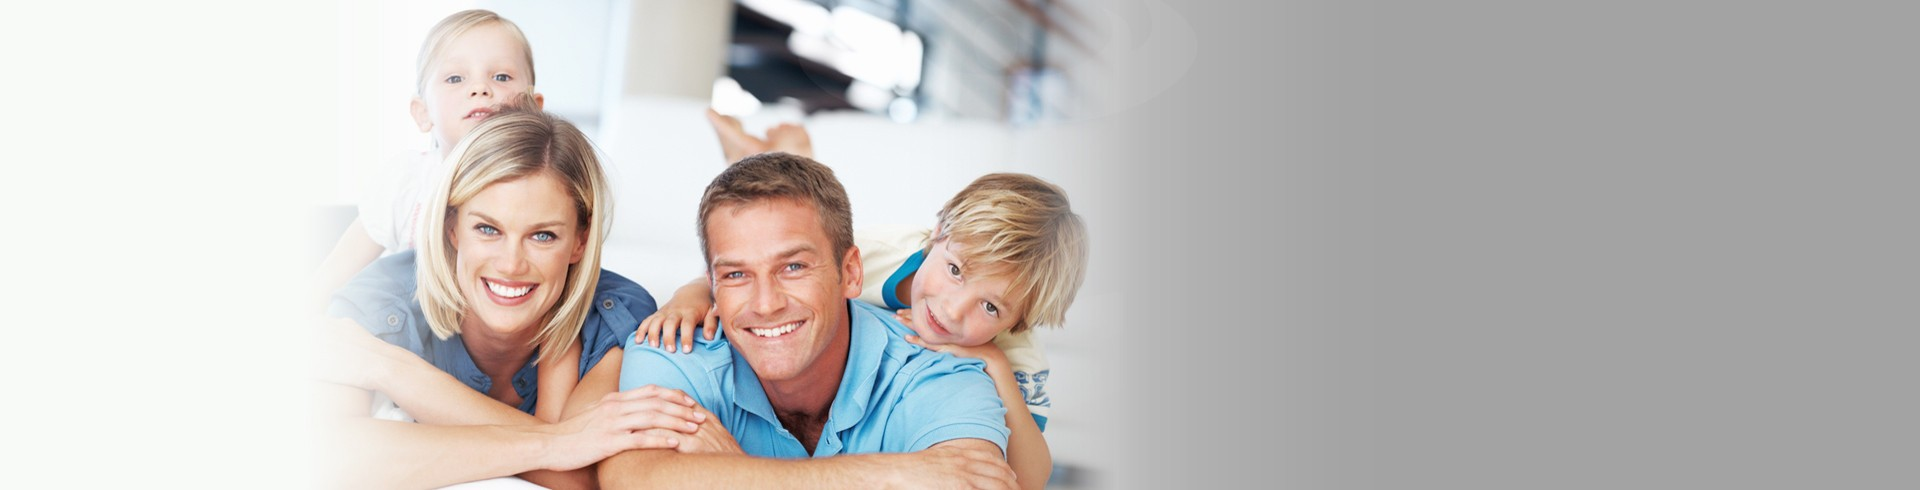 Family Health Insurance Plans In Texas!